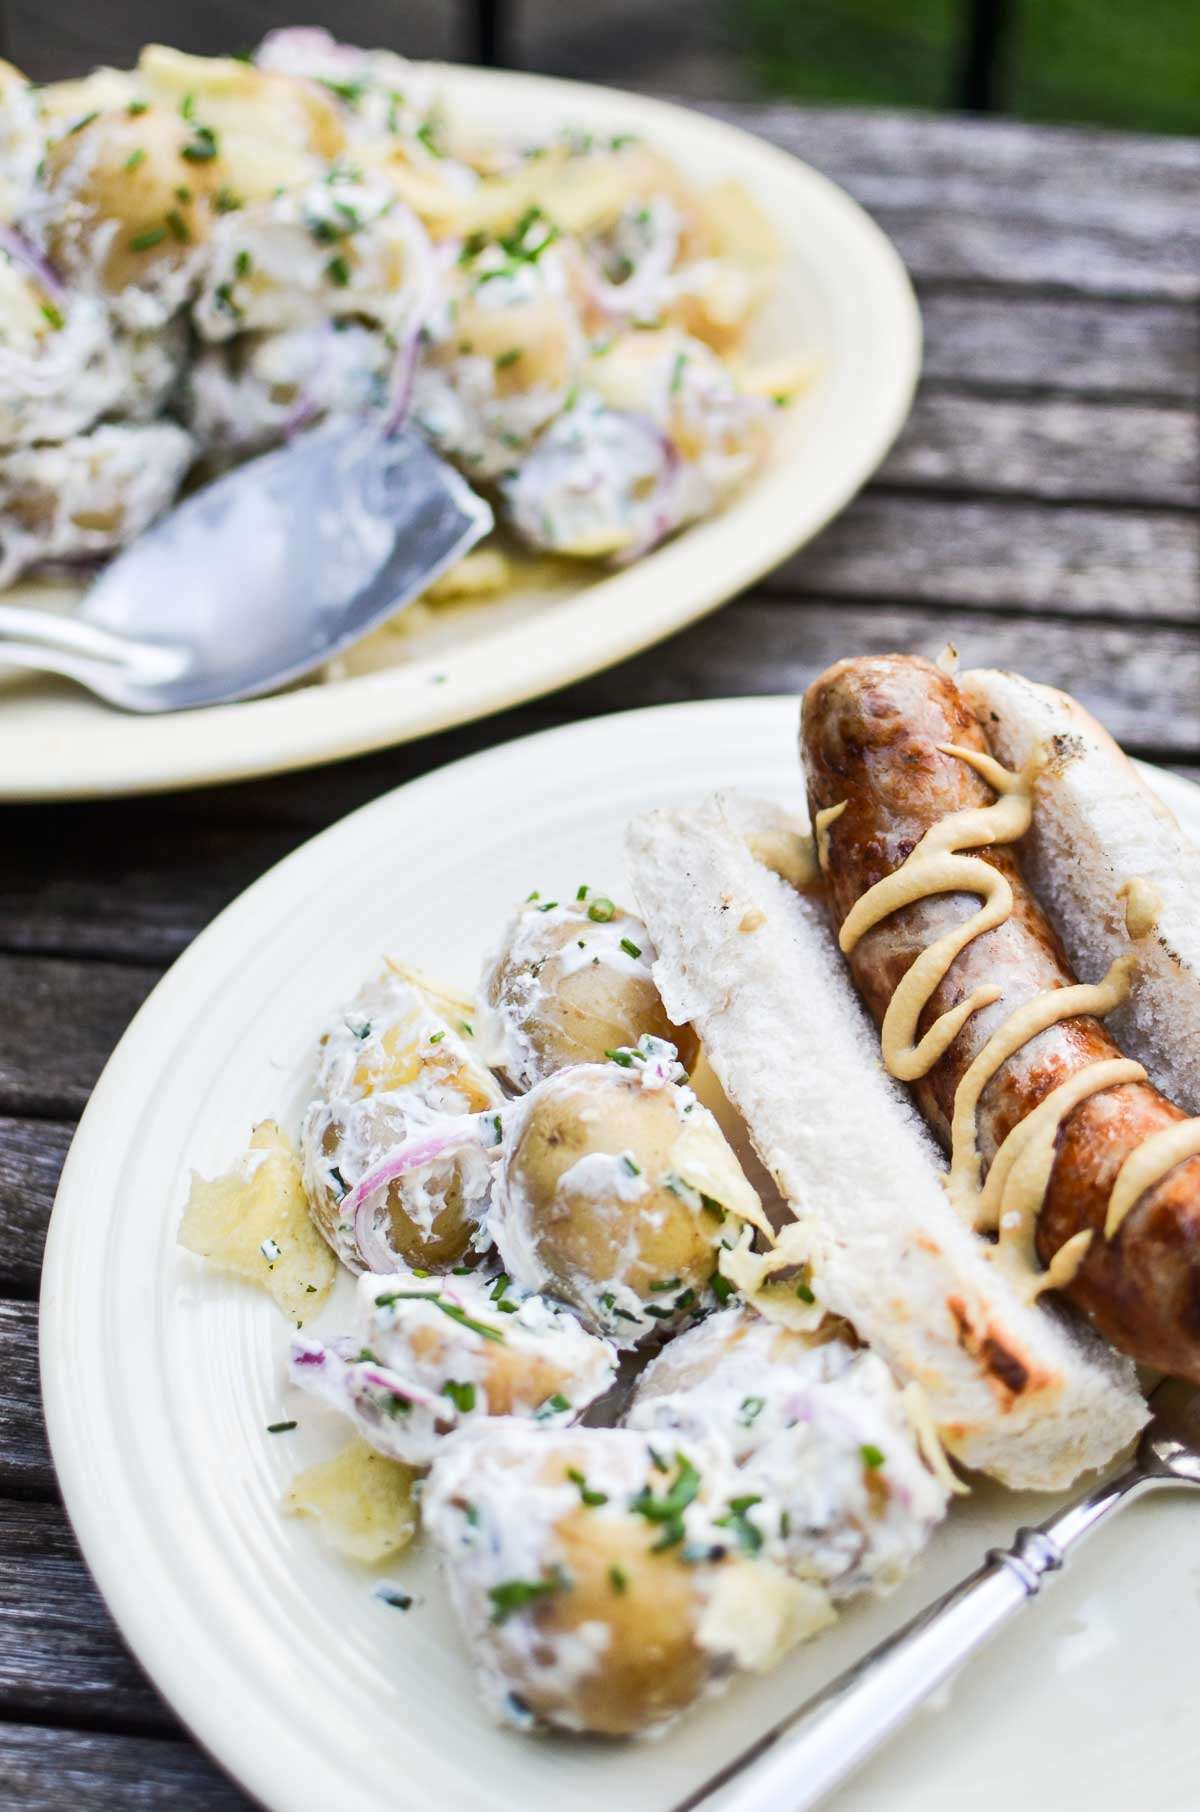 sour cream and onion potato salad with a grilled brat